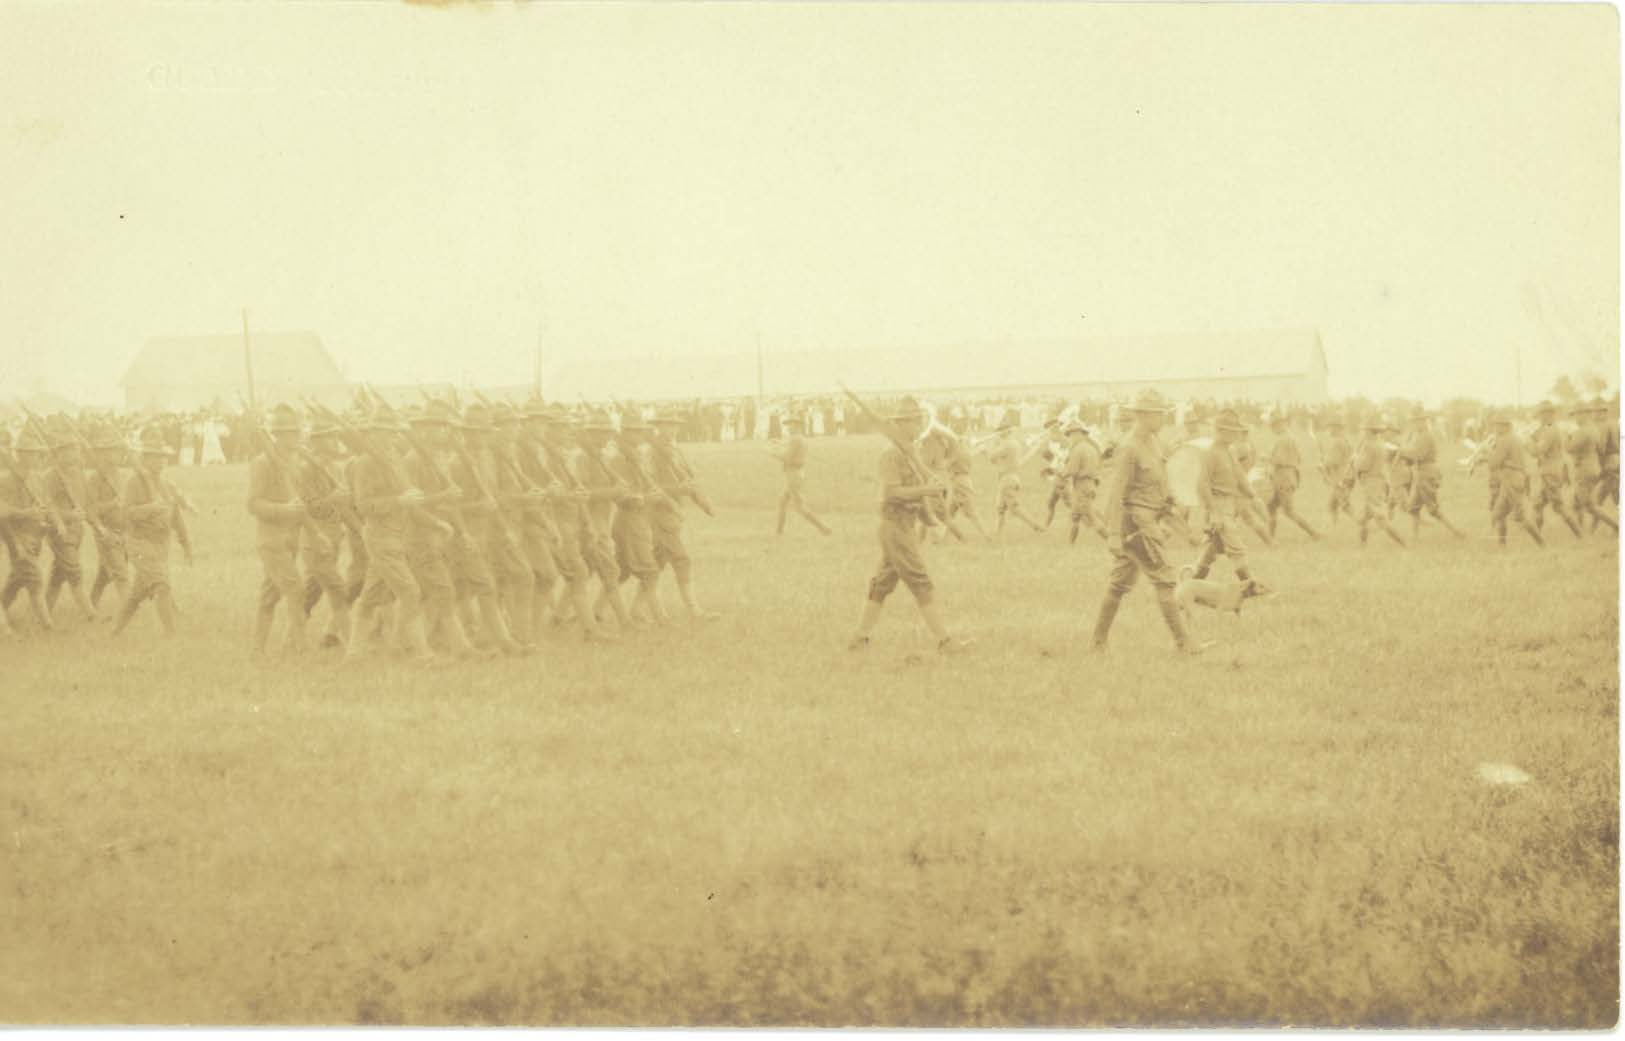 Troops and band of the 2nd Maine Infantry on parade at Camp Keyes, Augusta, Me., 1917